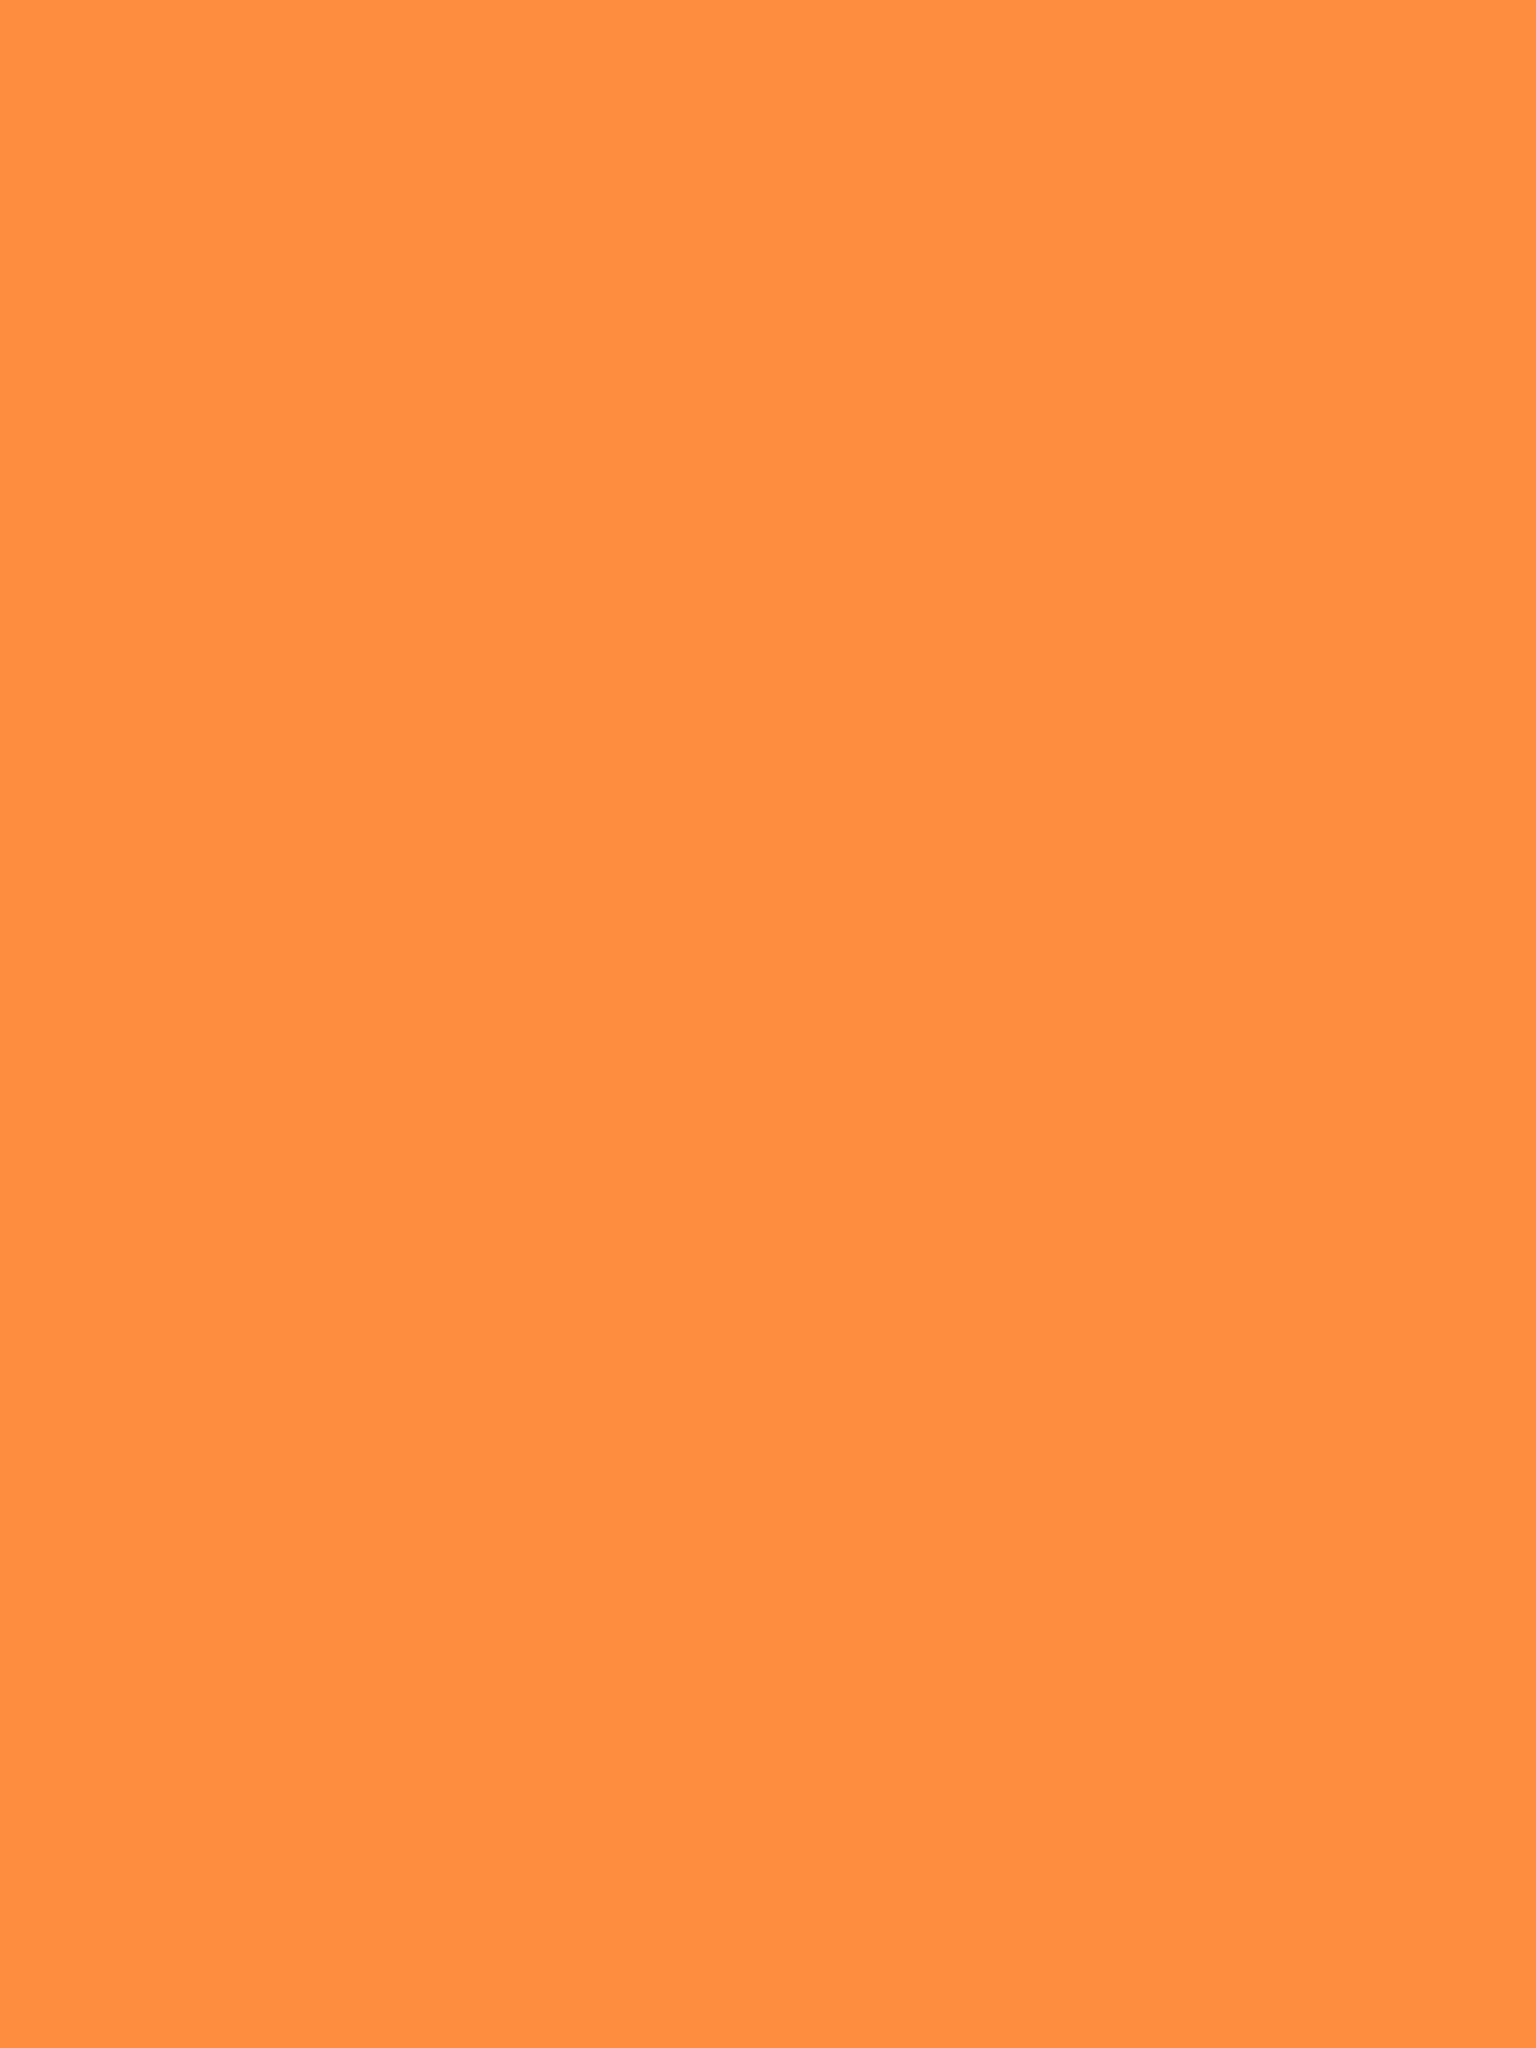 Free Download Solid Color Wallpaper For Iphone Solid Color